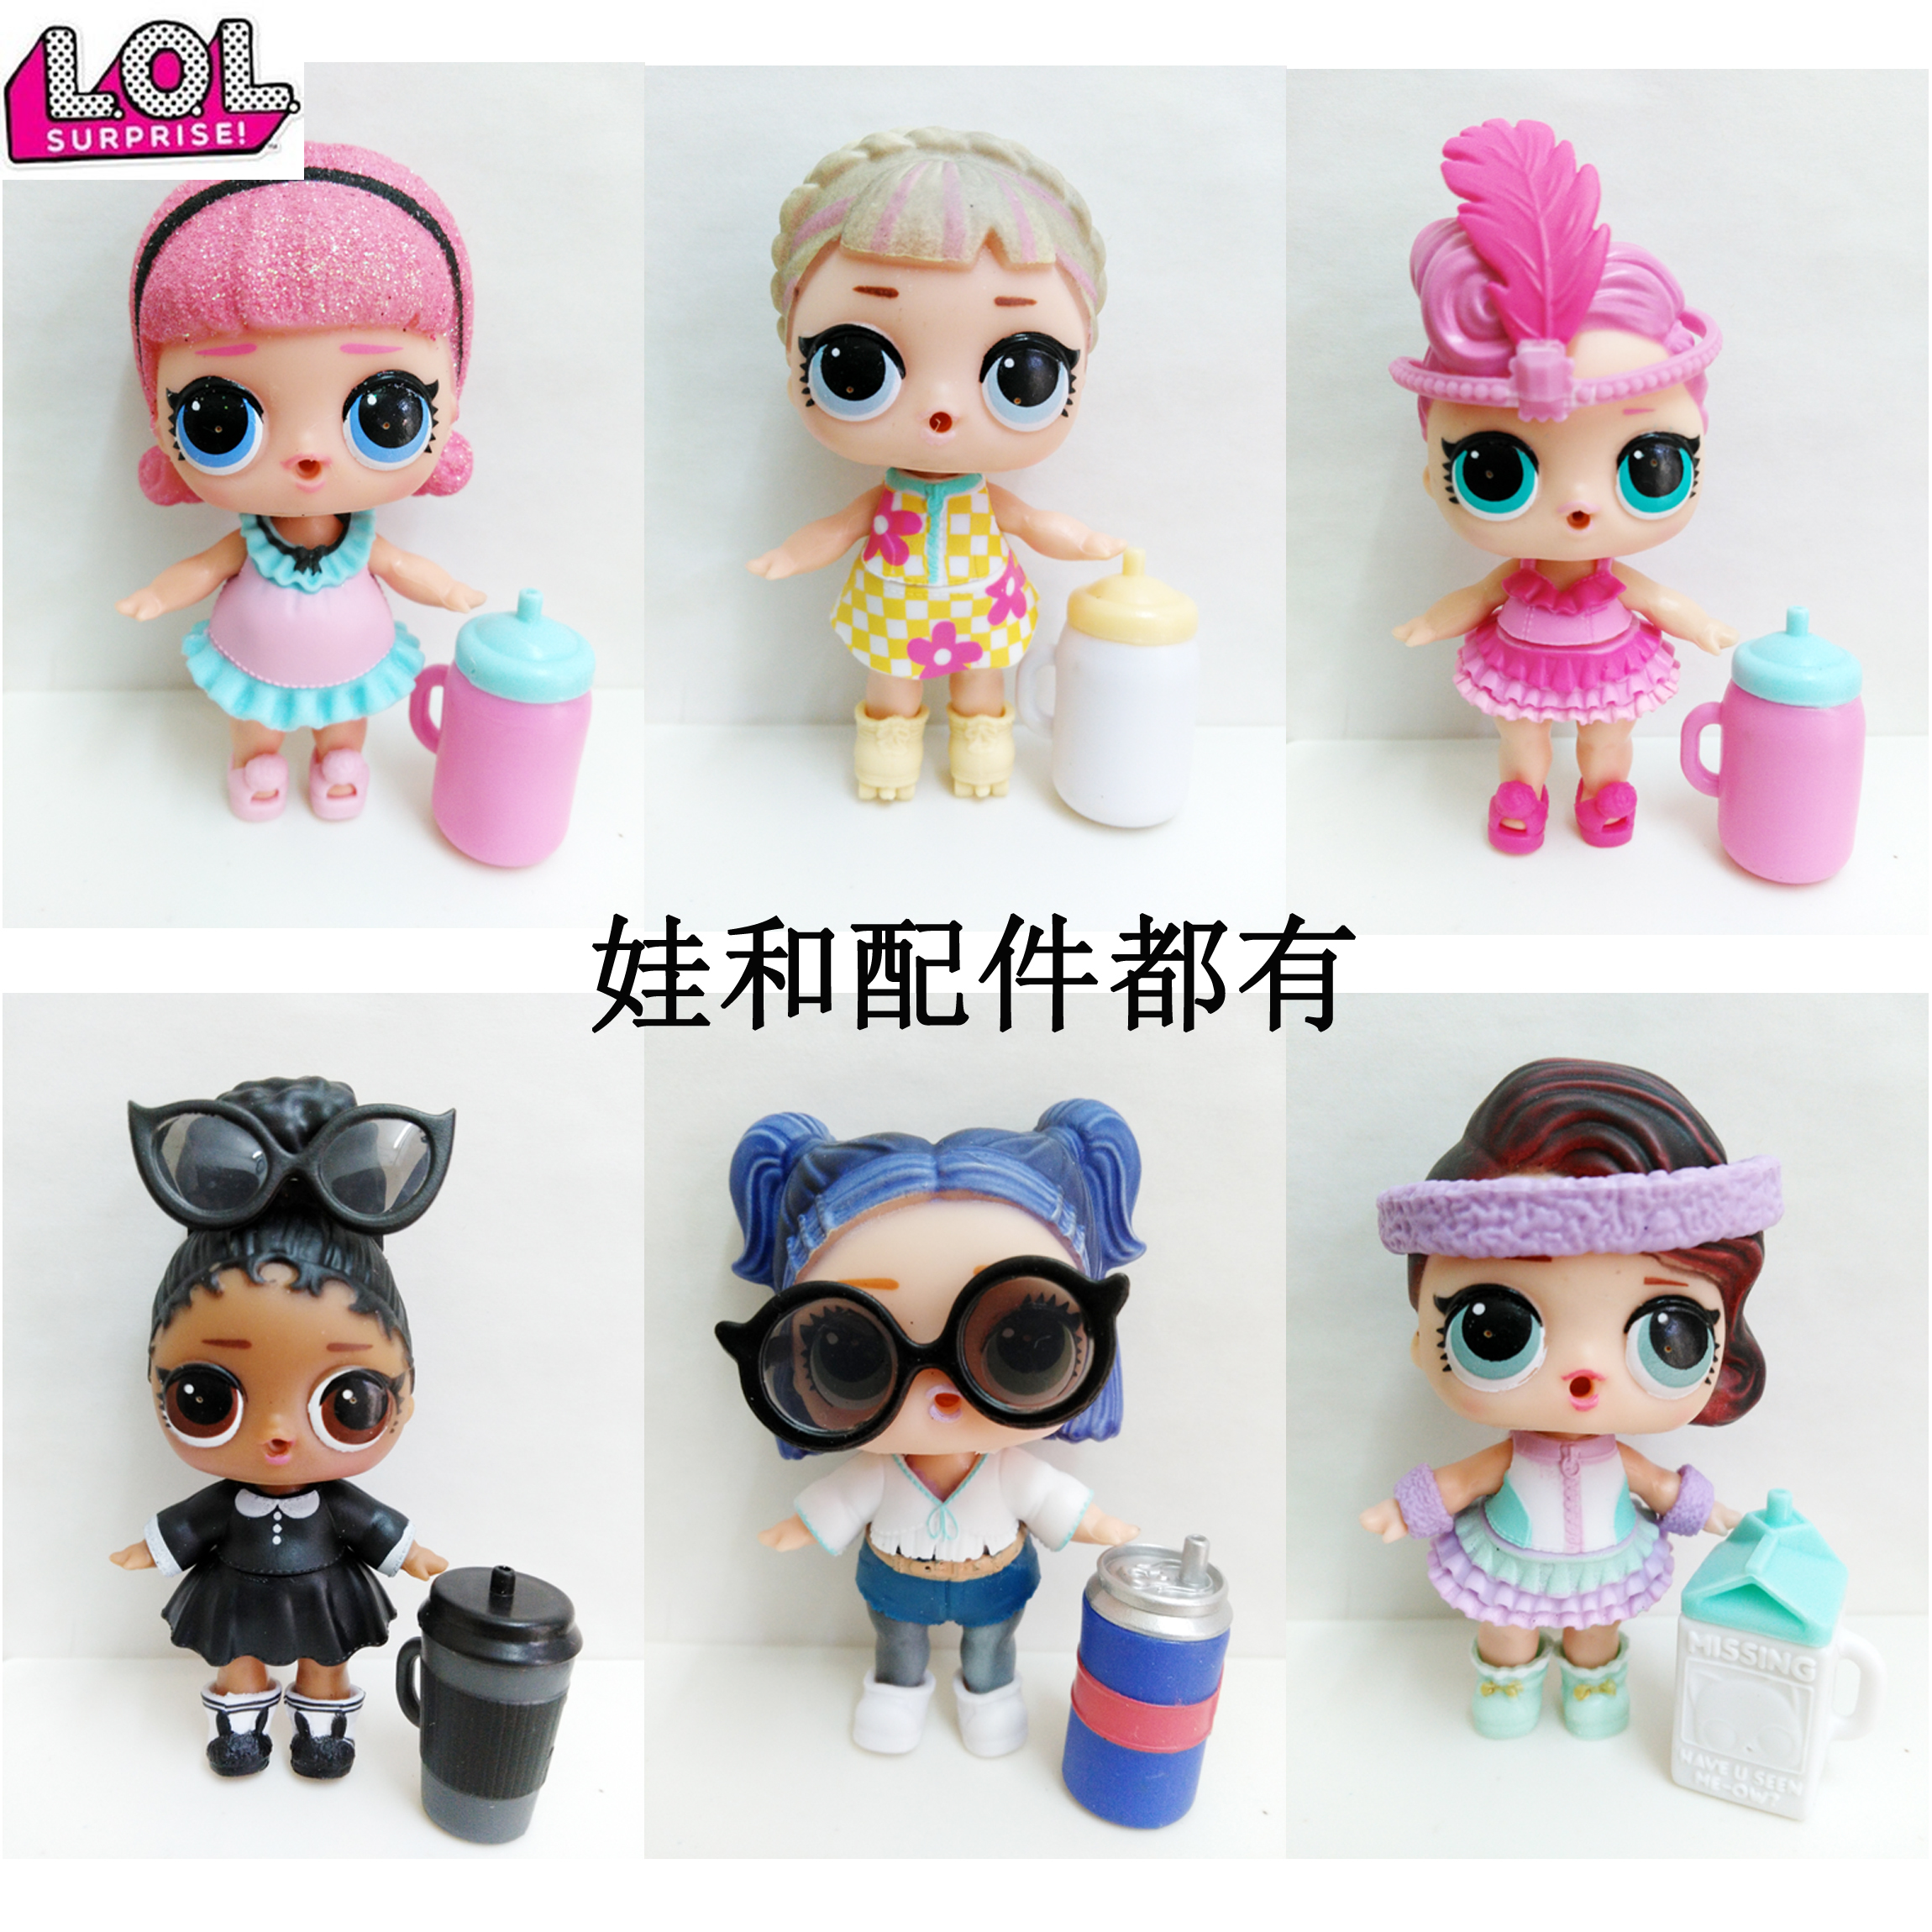 L.O.L. SURPRISE! Original Doll Including Clothes And Shoes Dolls Action Figure Model Girl Christmas Gift